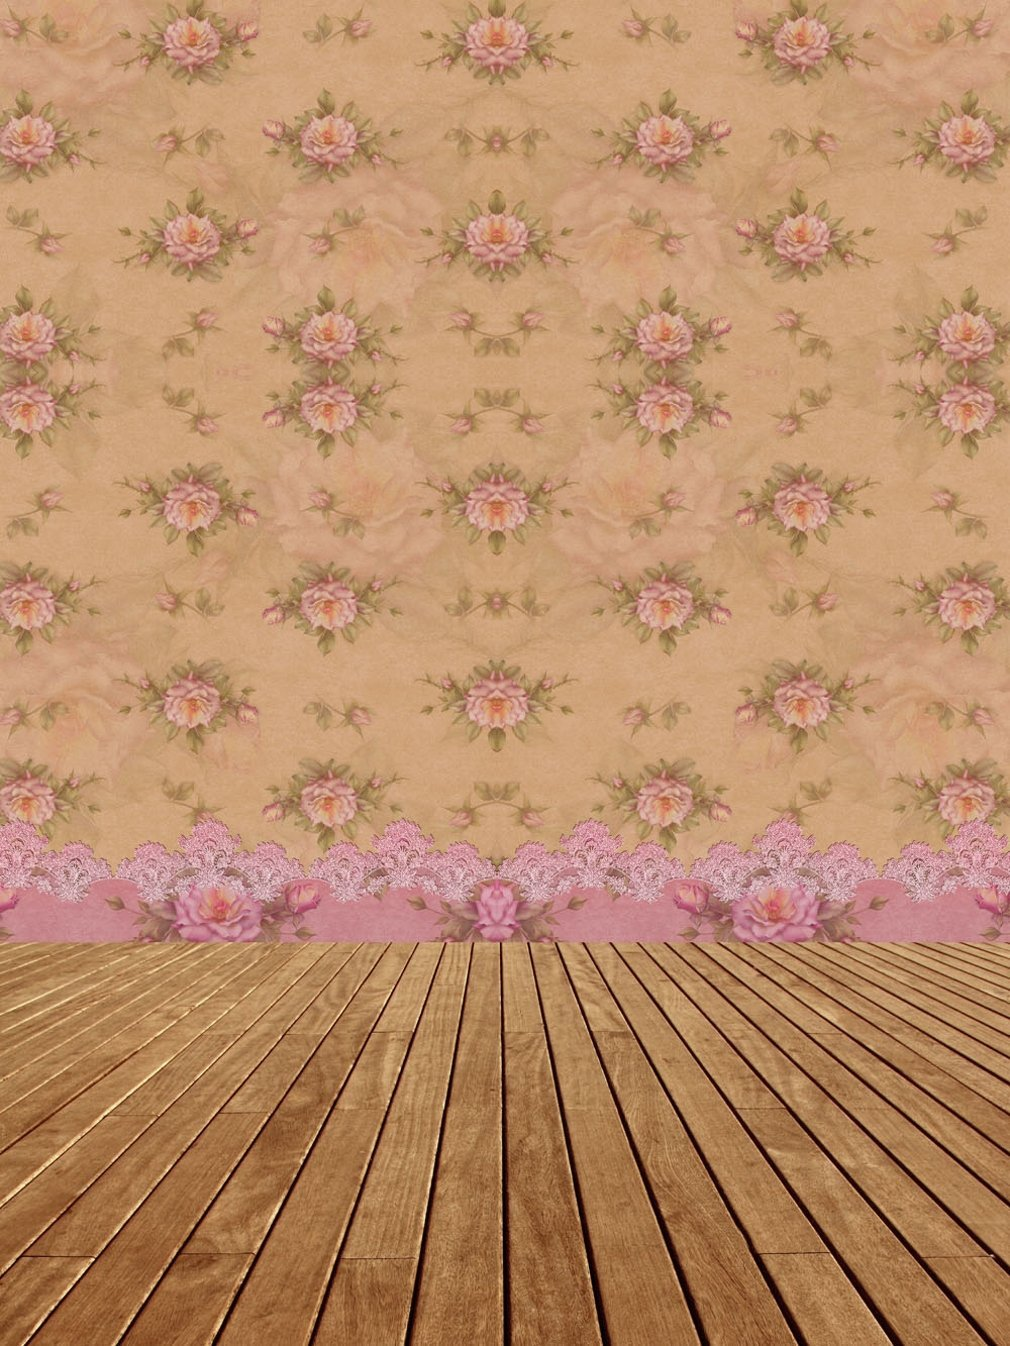 8x10 FT Photography Backdrop Classical Retro Style Victorian Damask Arabesque Oriental Effects Image Background for Baby Shower Birthday Wedding Bridal Shower Party Decoration Photo Studio